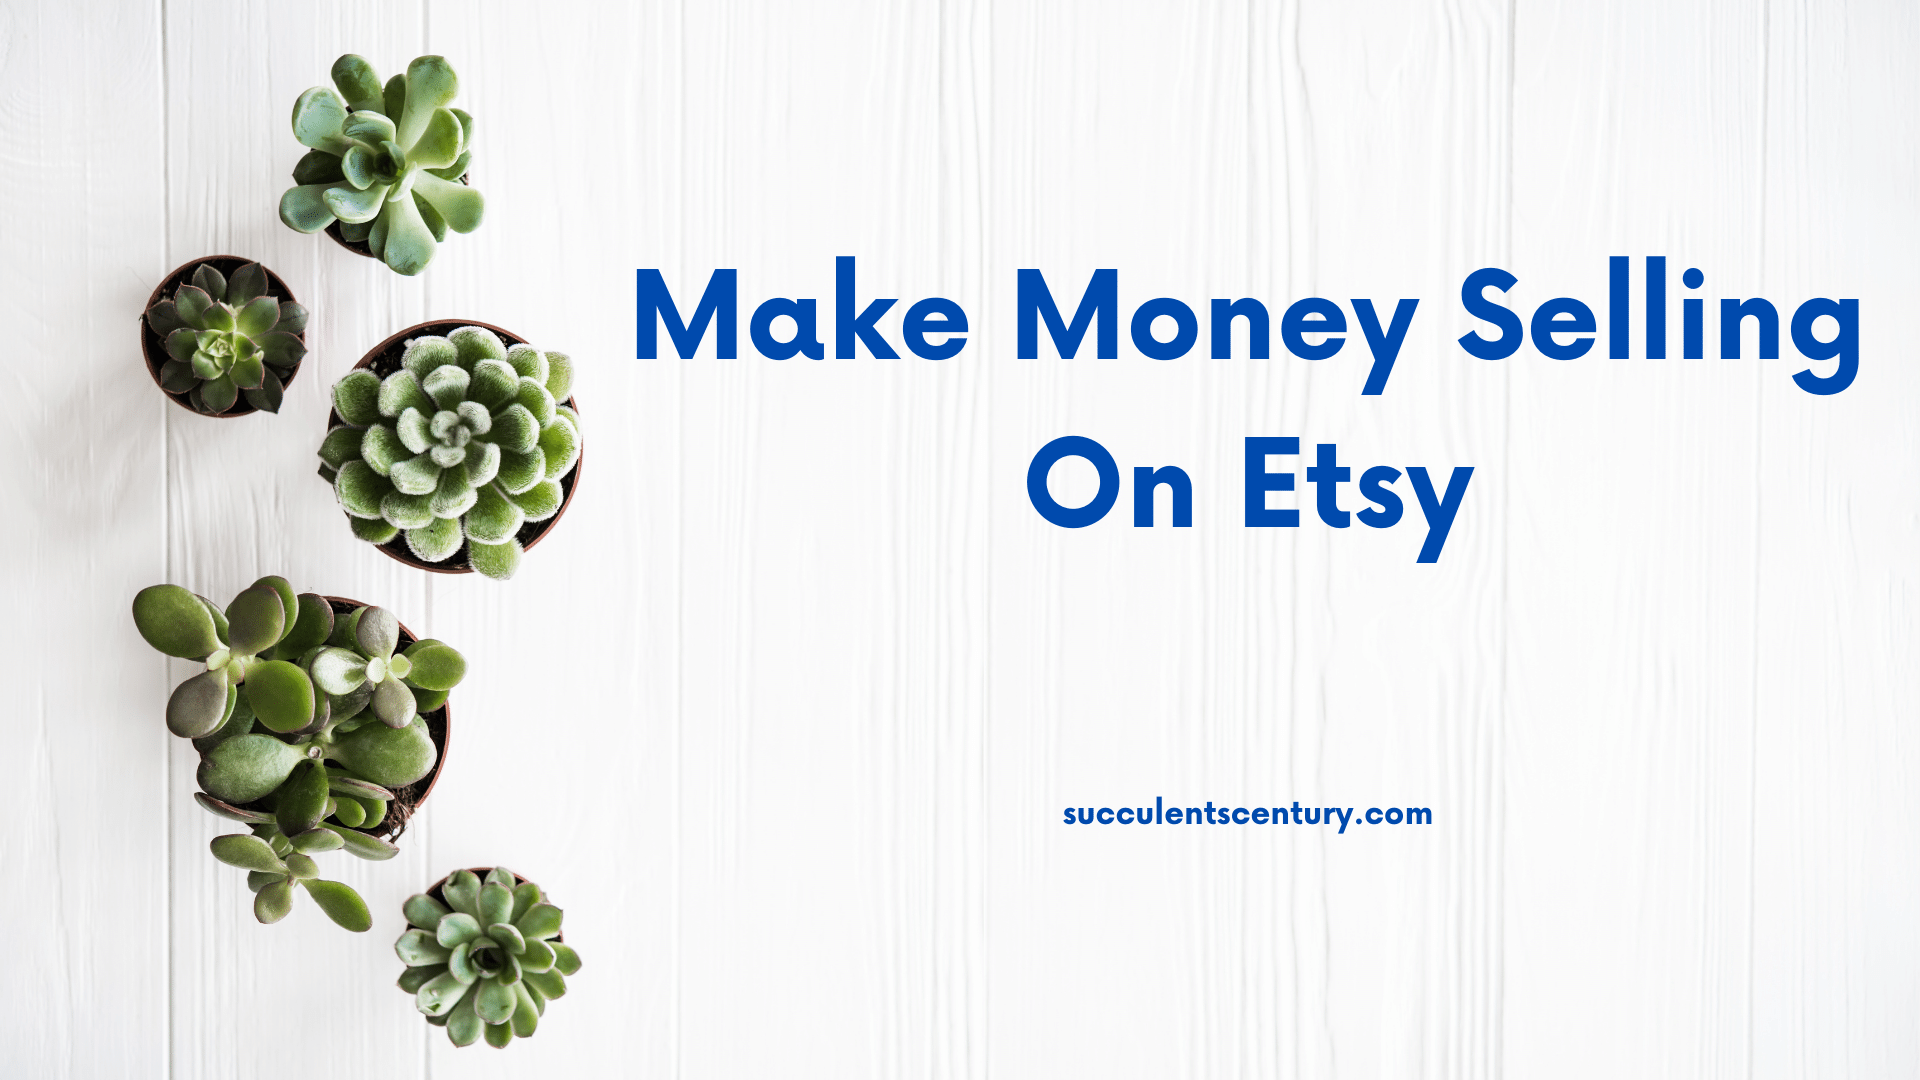 How to make money selling stuff on Etsy